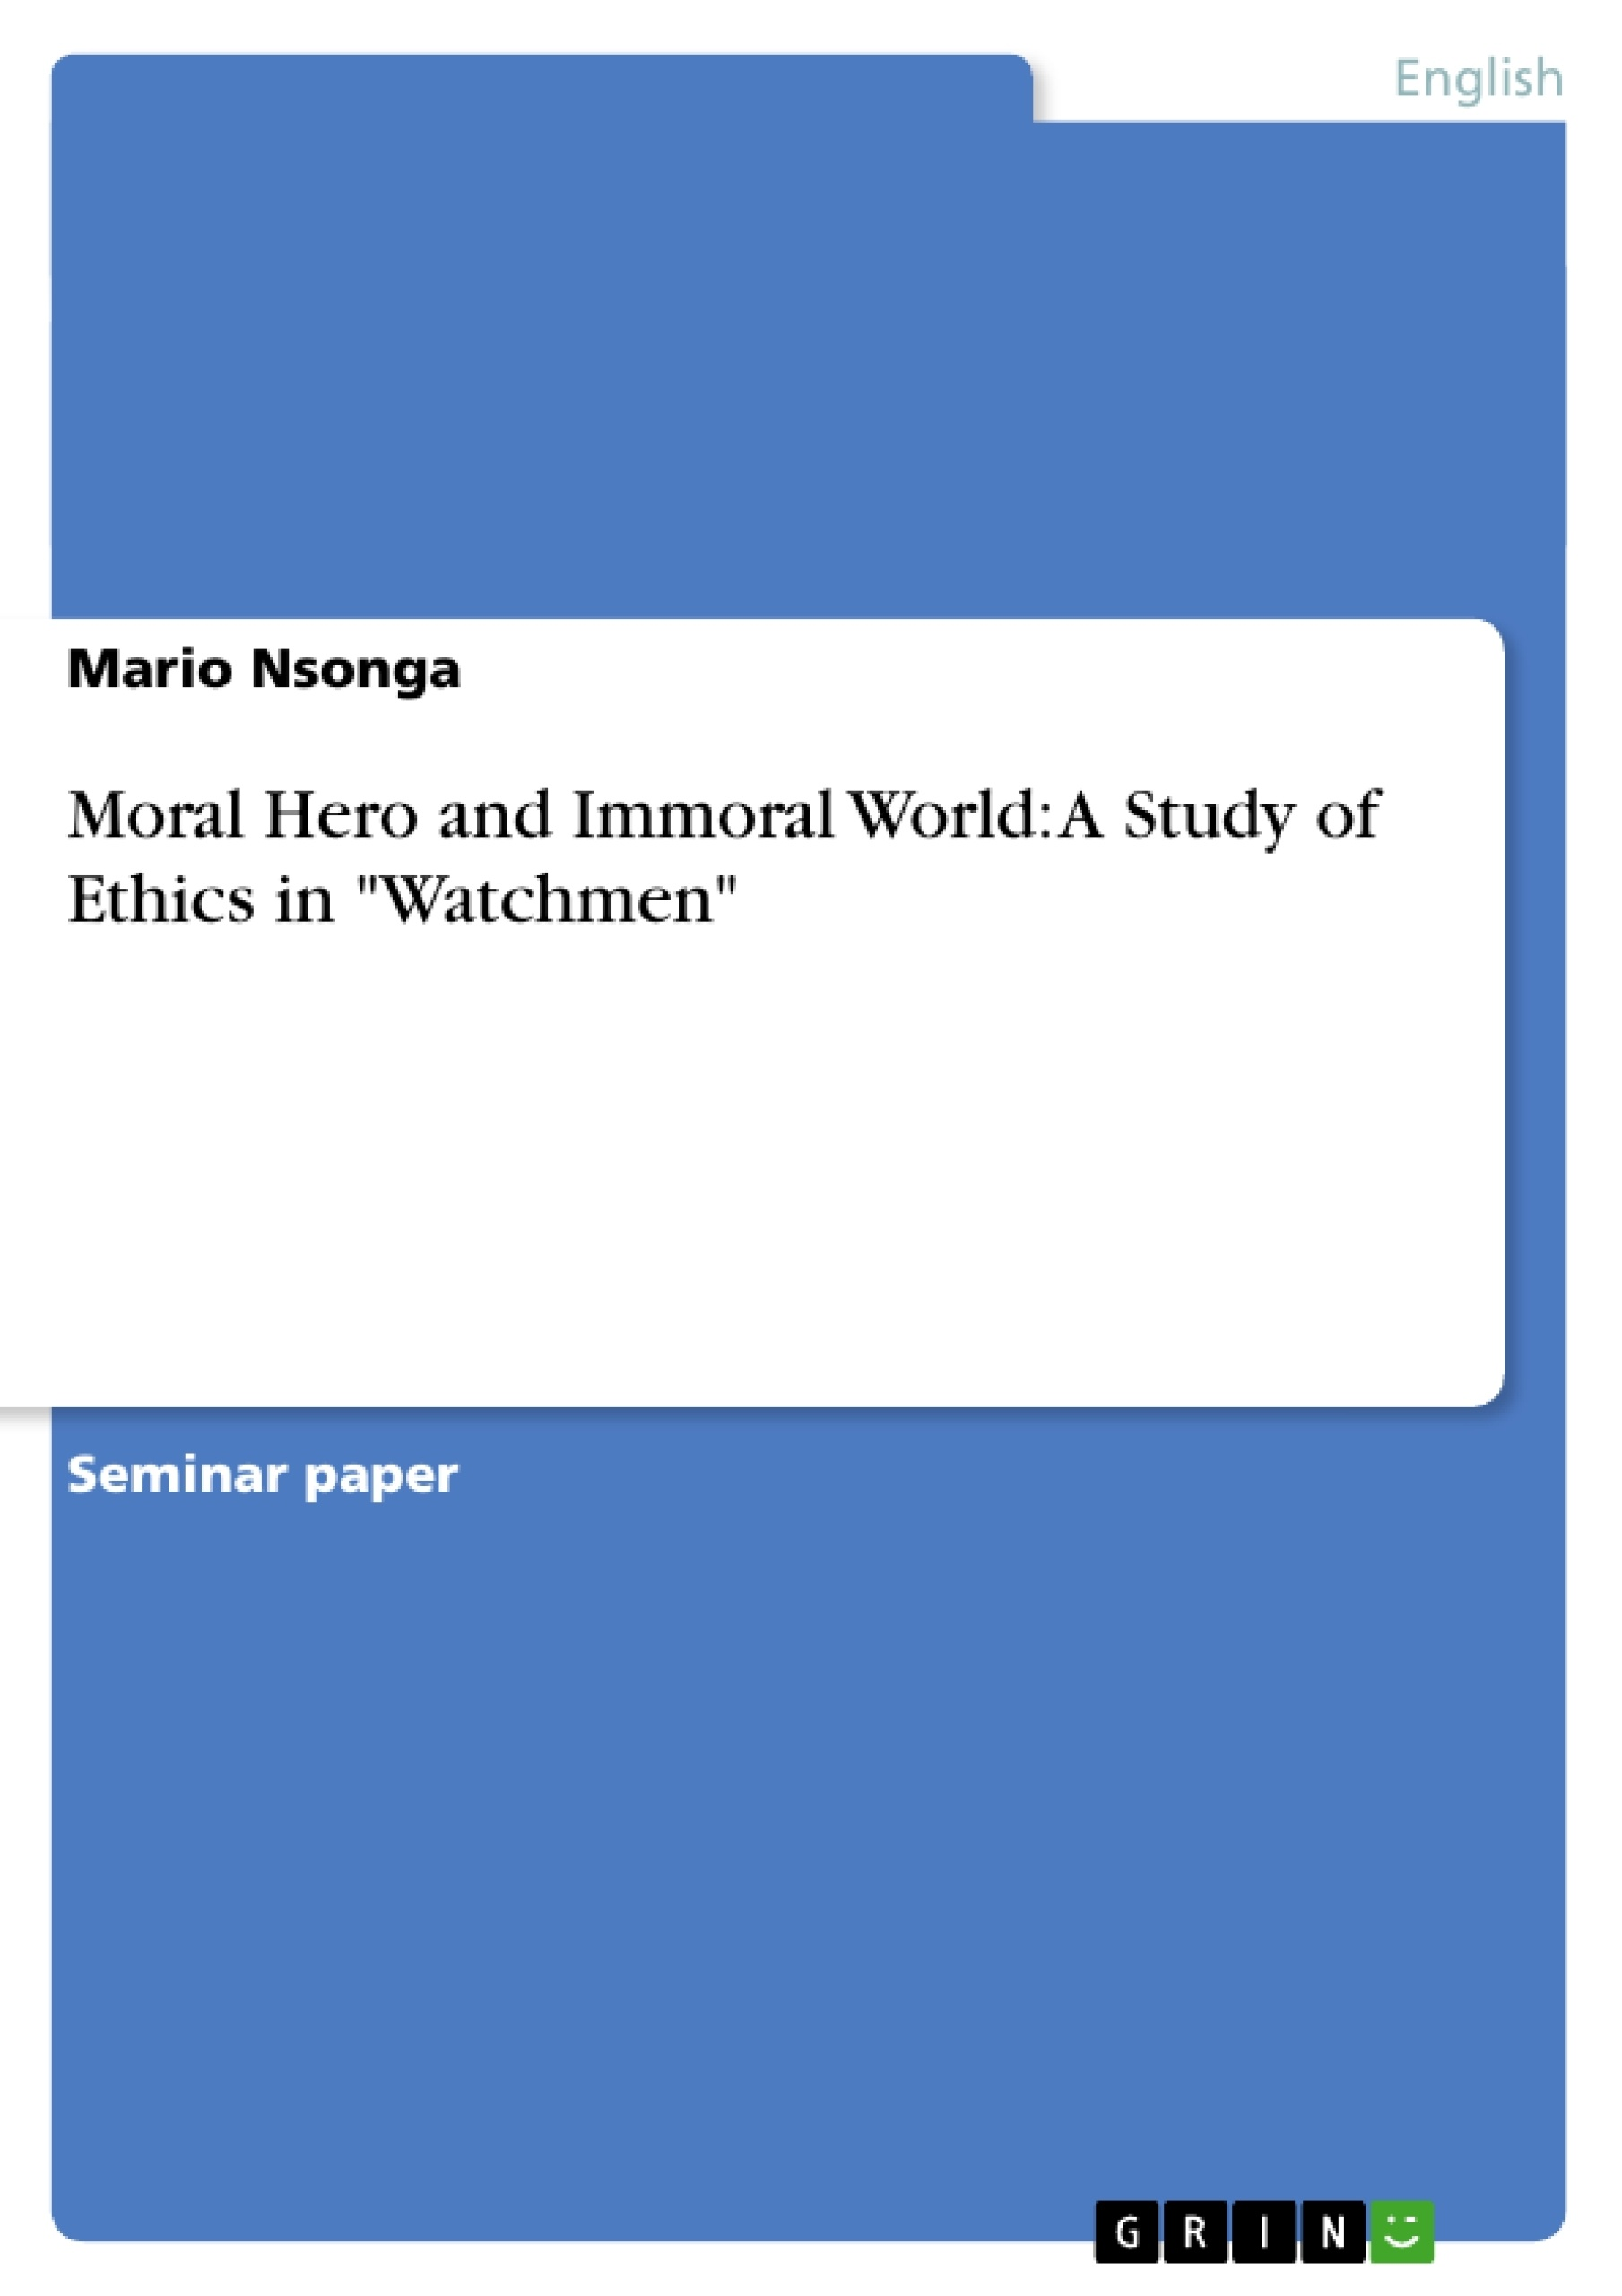 moral hero and immoral world a study of ethics in watchmen upload your own papers earn money and win an iphone 7